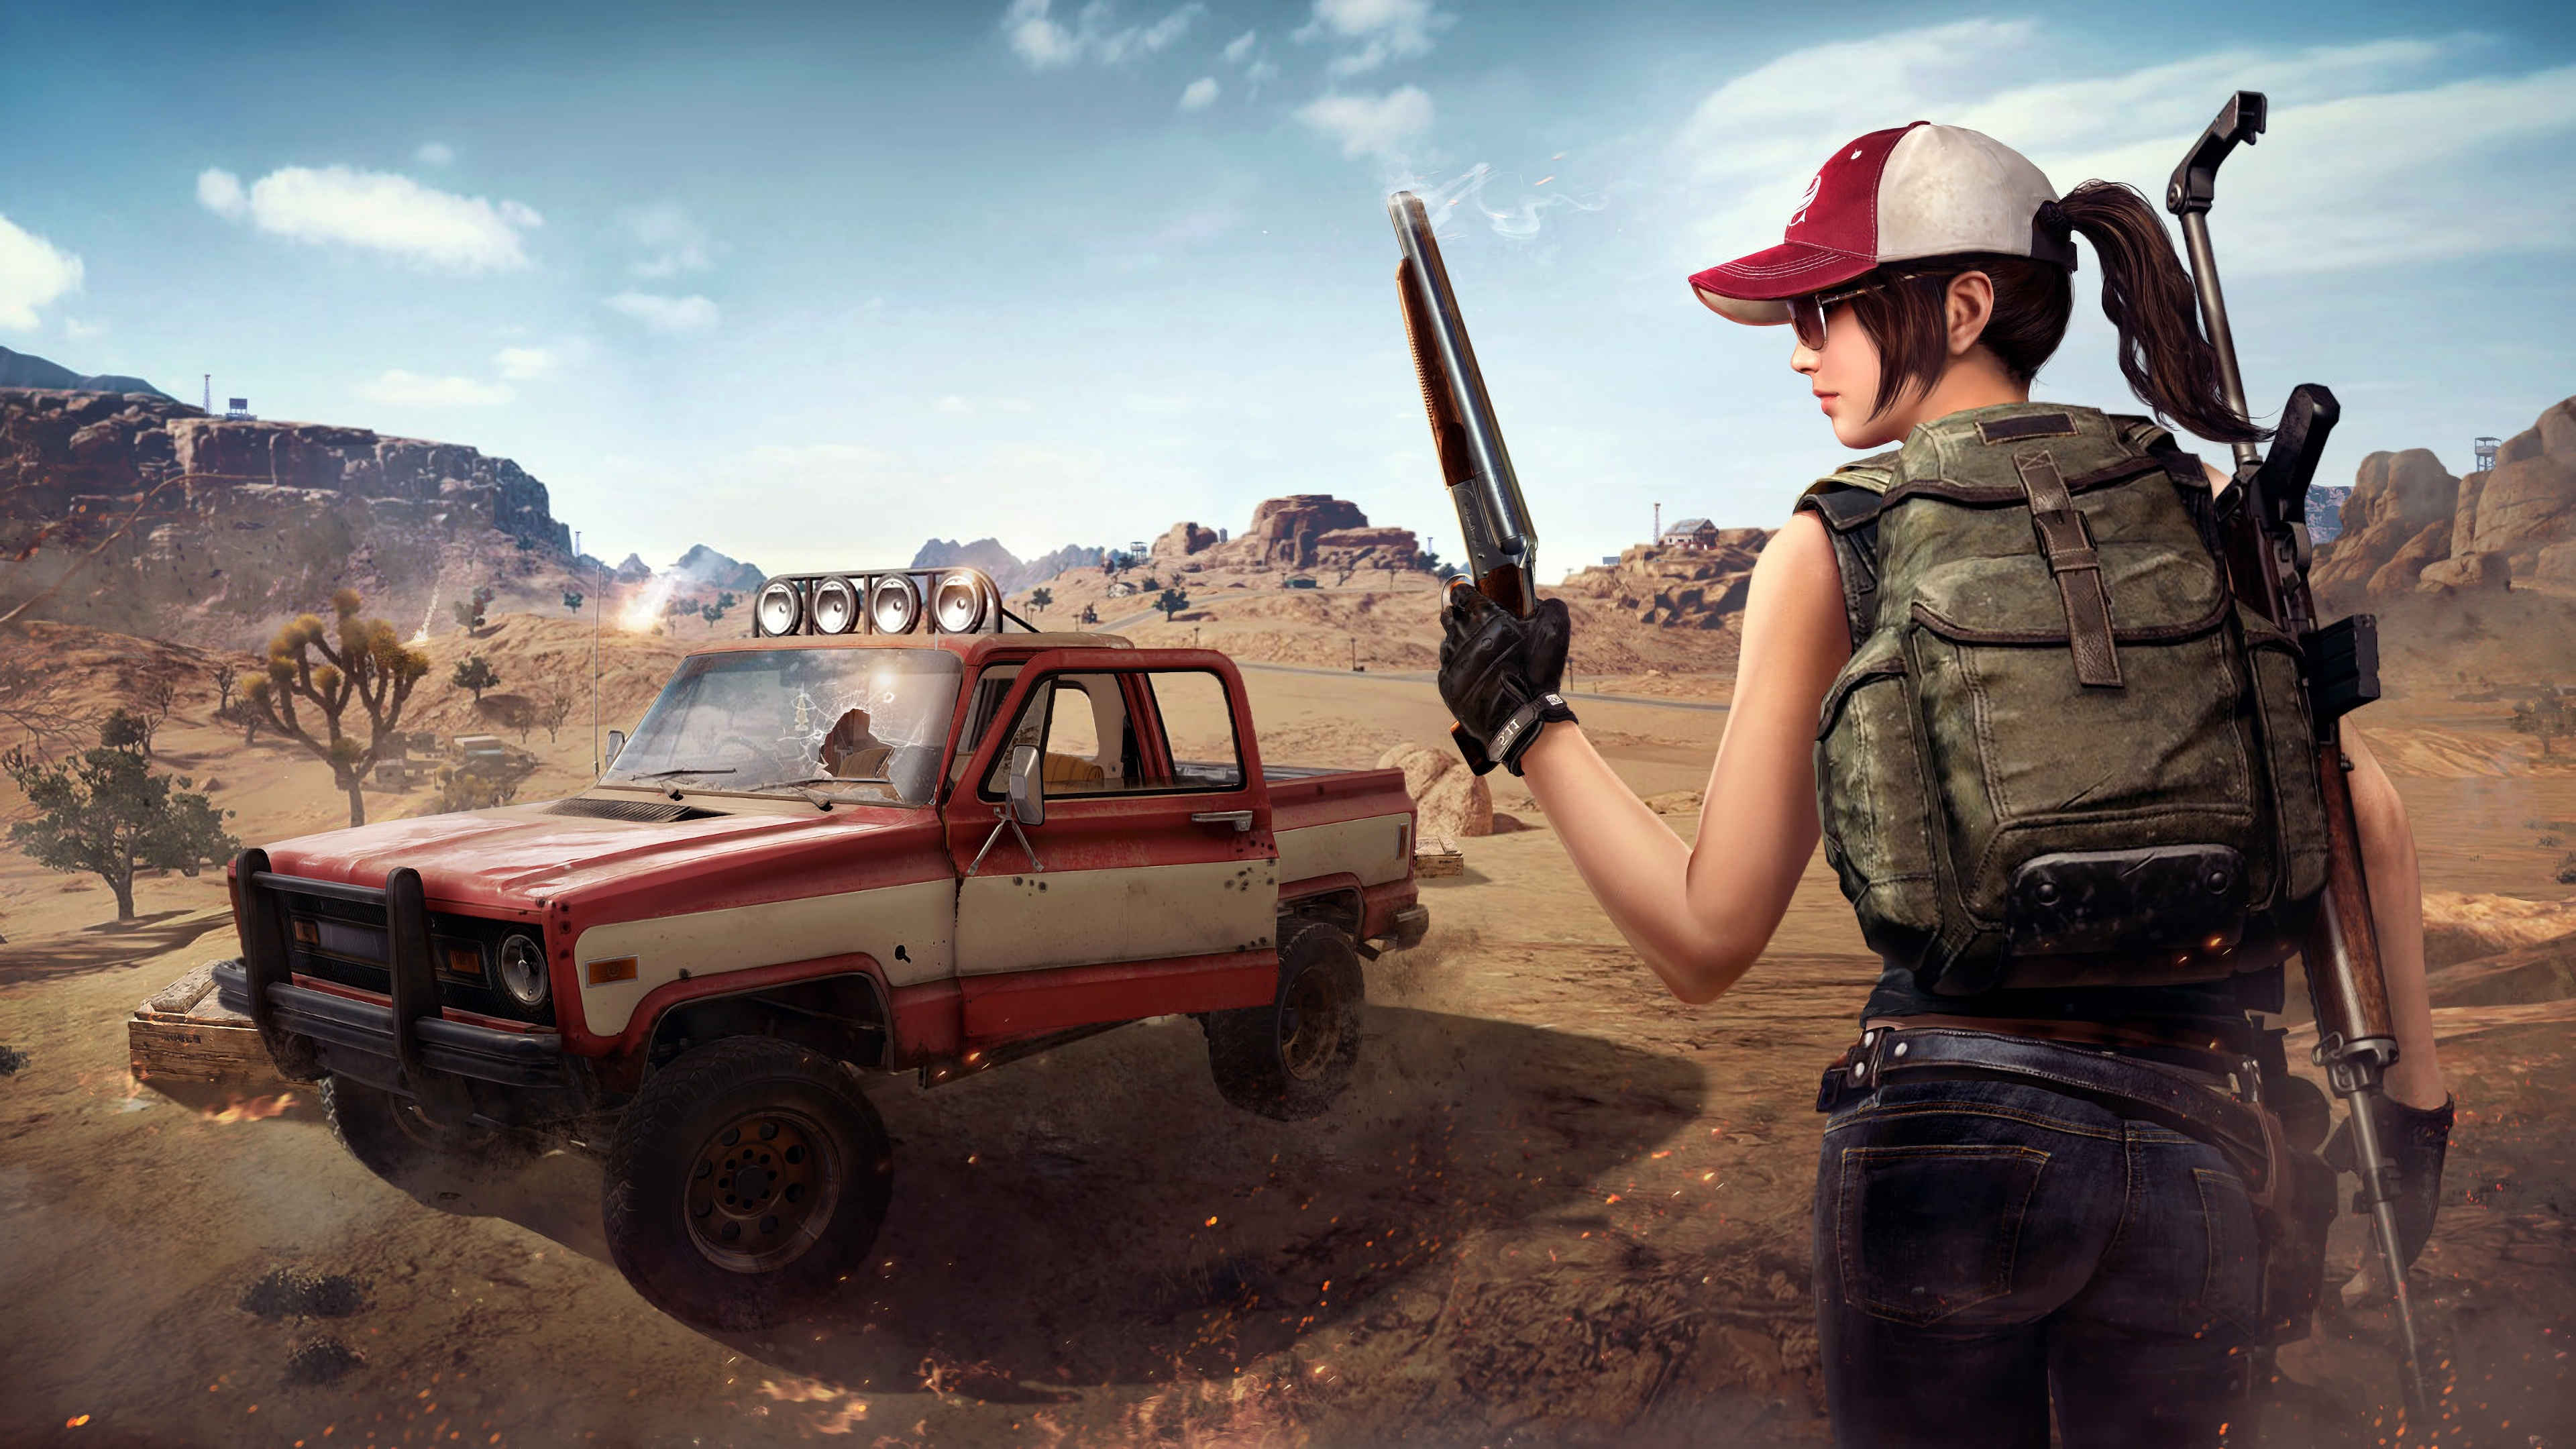 Pubg Video Game 4k Hd Games 4k Wallpapers Images: Pubg Girl 4k, HD Games, 4k Wallpapers, Images, Backgrounds